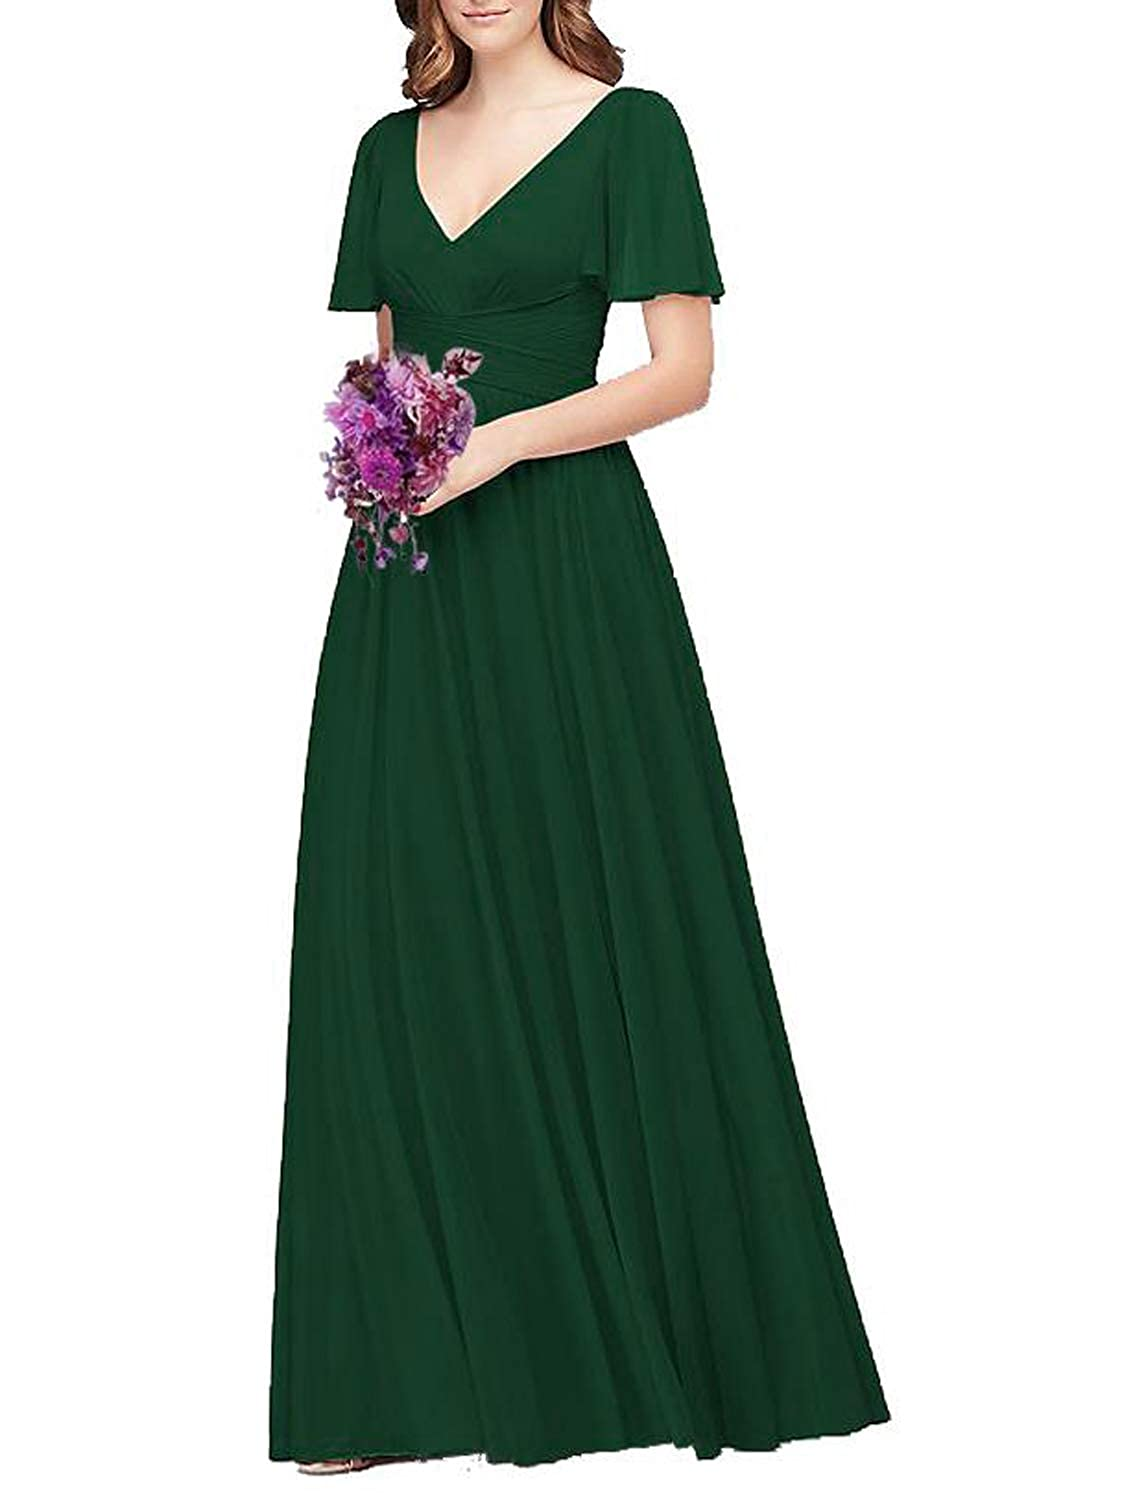 Hunter Green Flutter Sleeve Long Ball Prom Gown for Women Formal Bridesmaid Dress Maxi Skirt